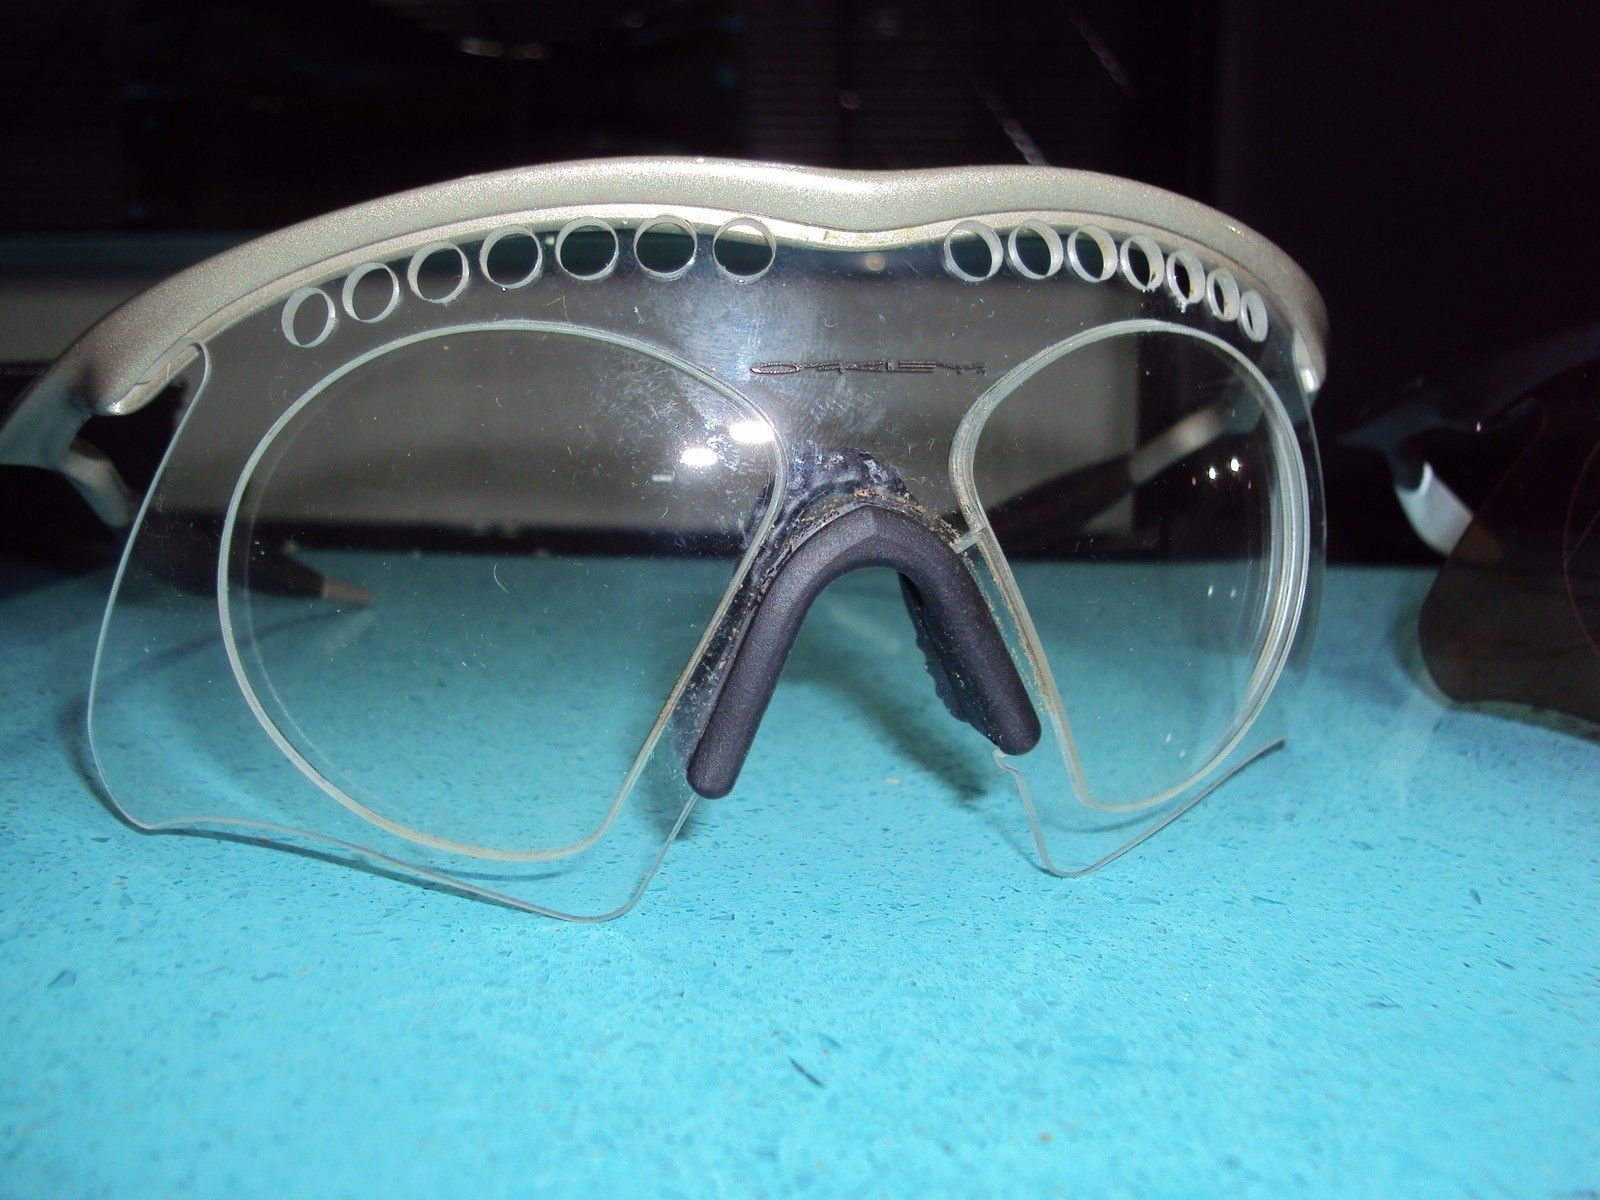 Info On These M Frames Please - 1358880960173.jpg